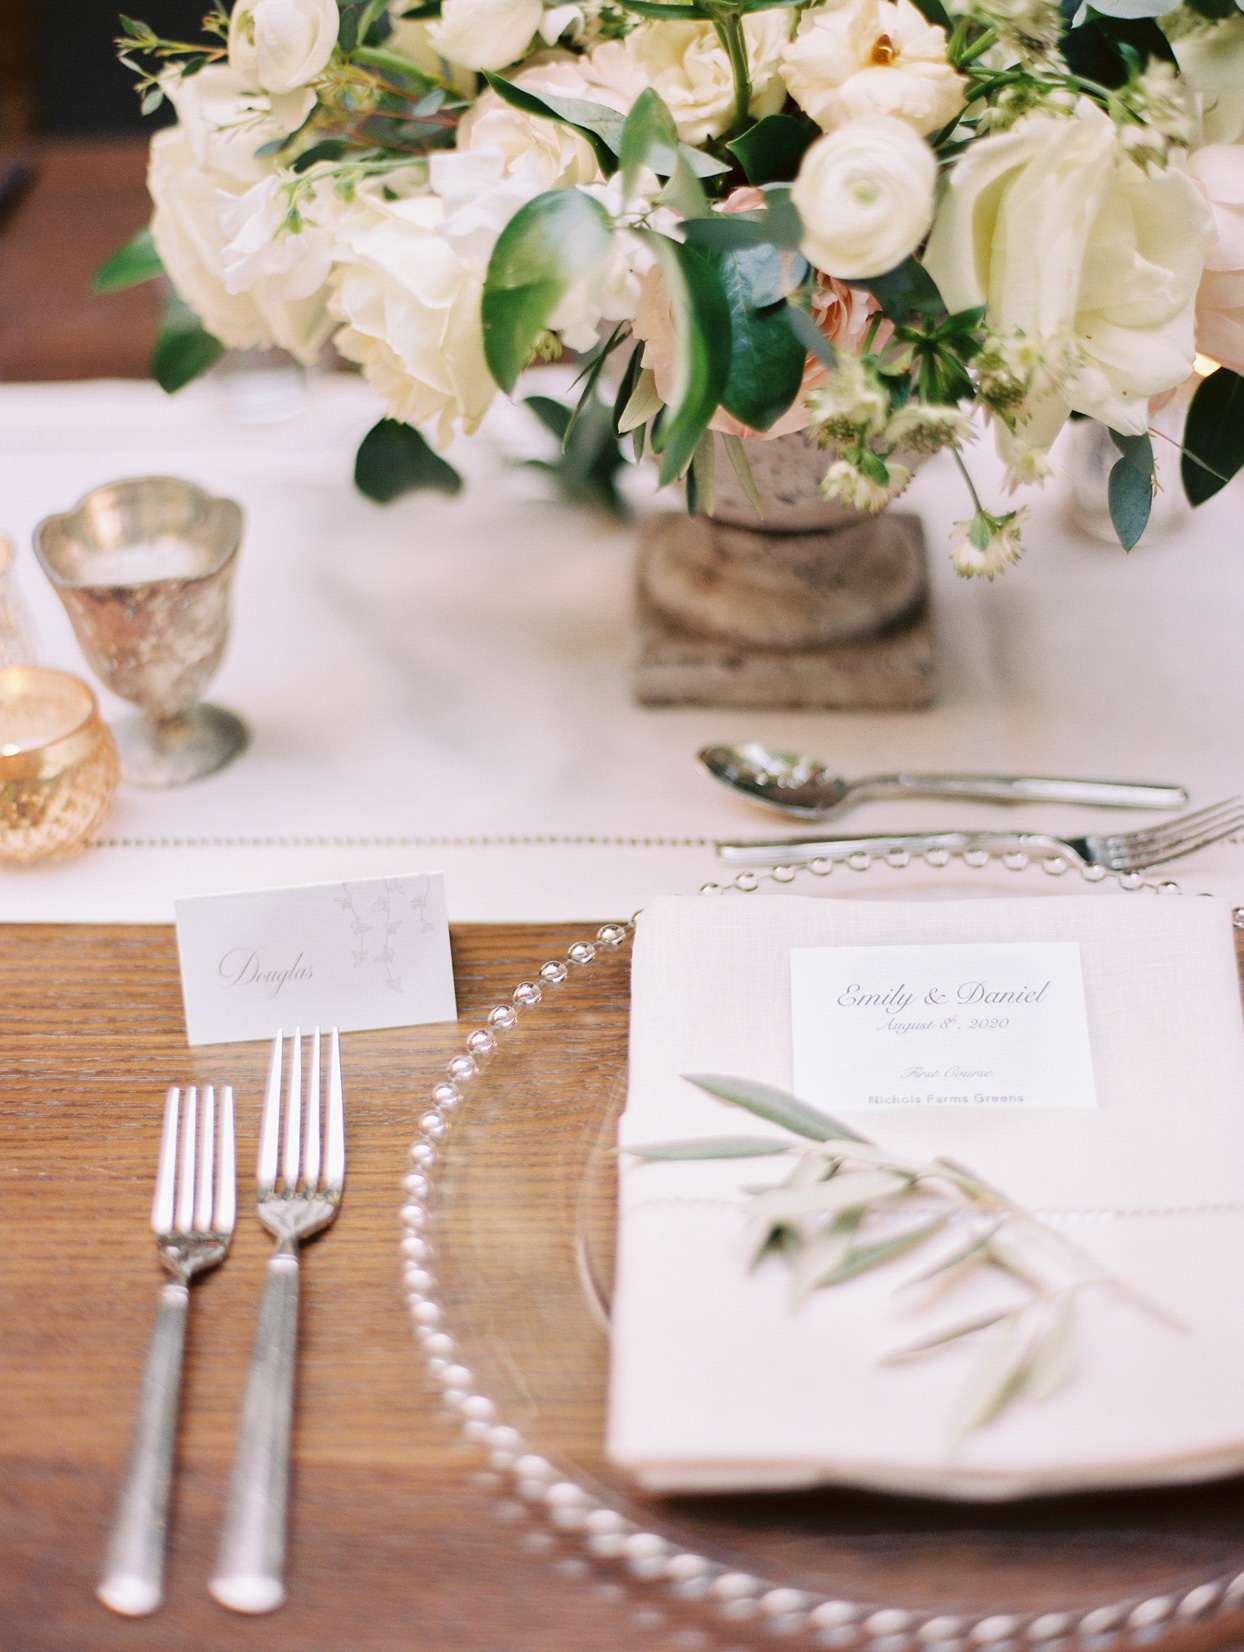 white place setting with clear charger and flowers